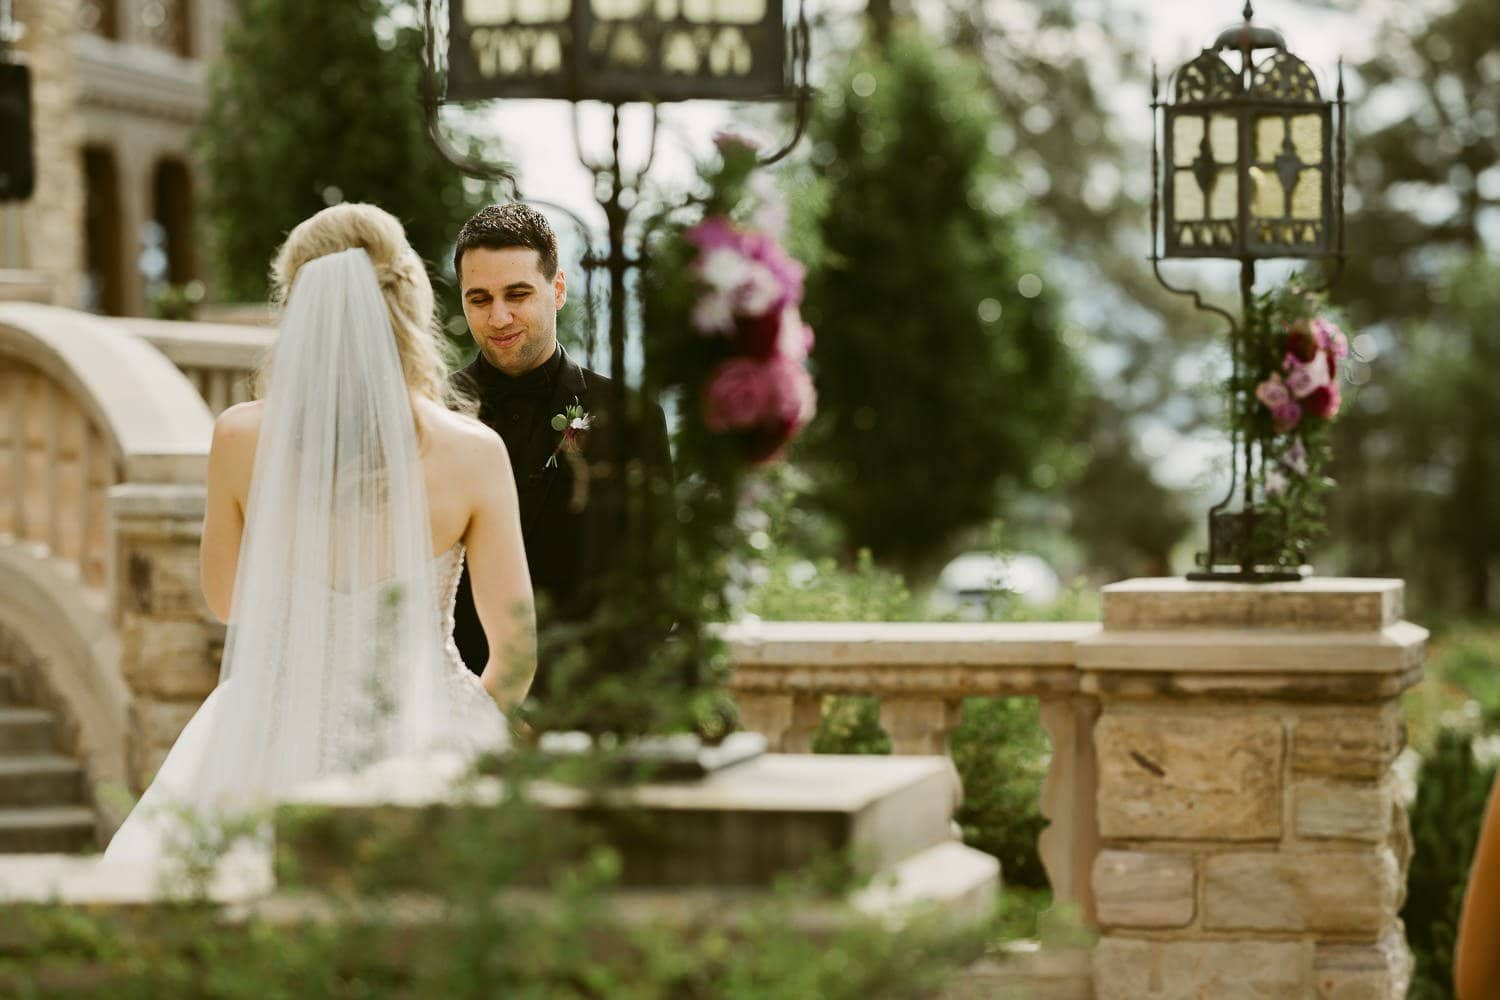 Highlands Ranch Mansion Intimate Wedding I Armon + McKenna | Colorado Denver Wedding Photographer | Colorado Mountain Weddings